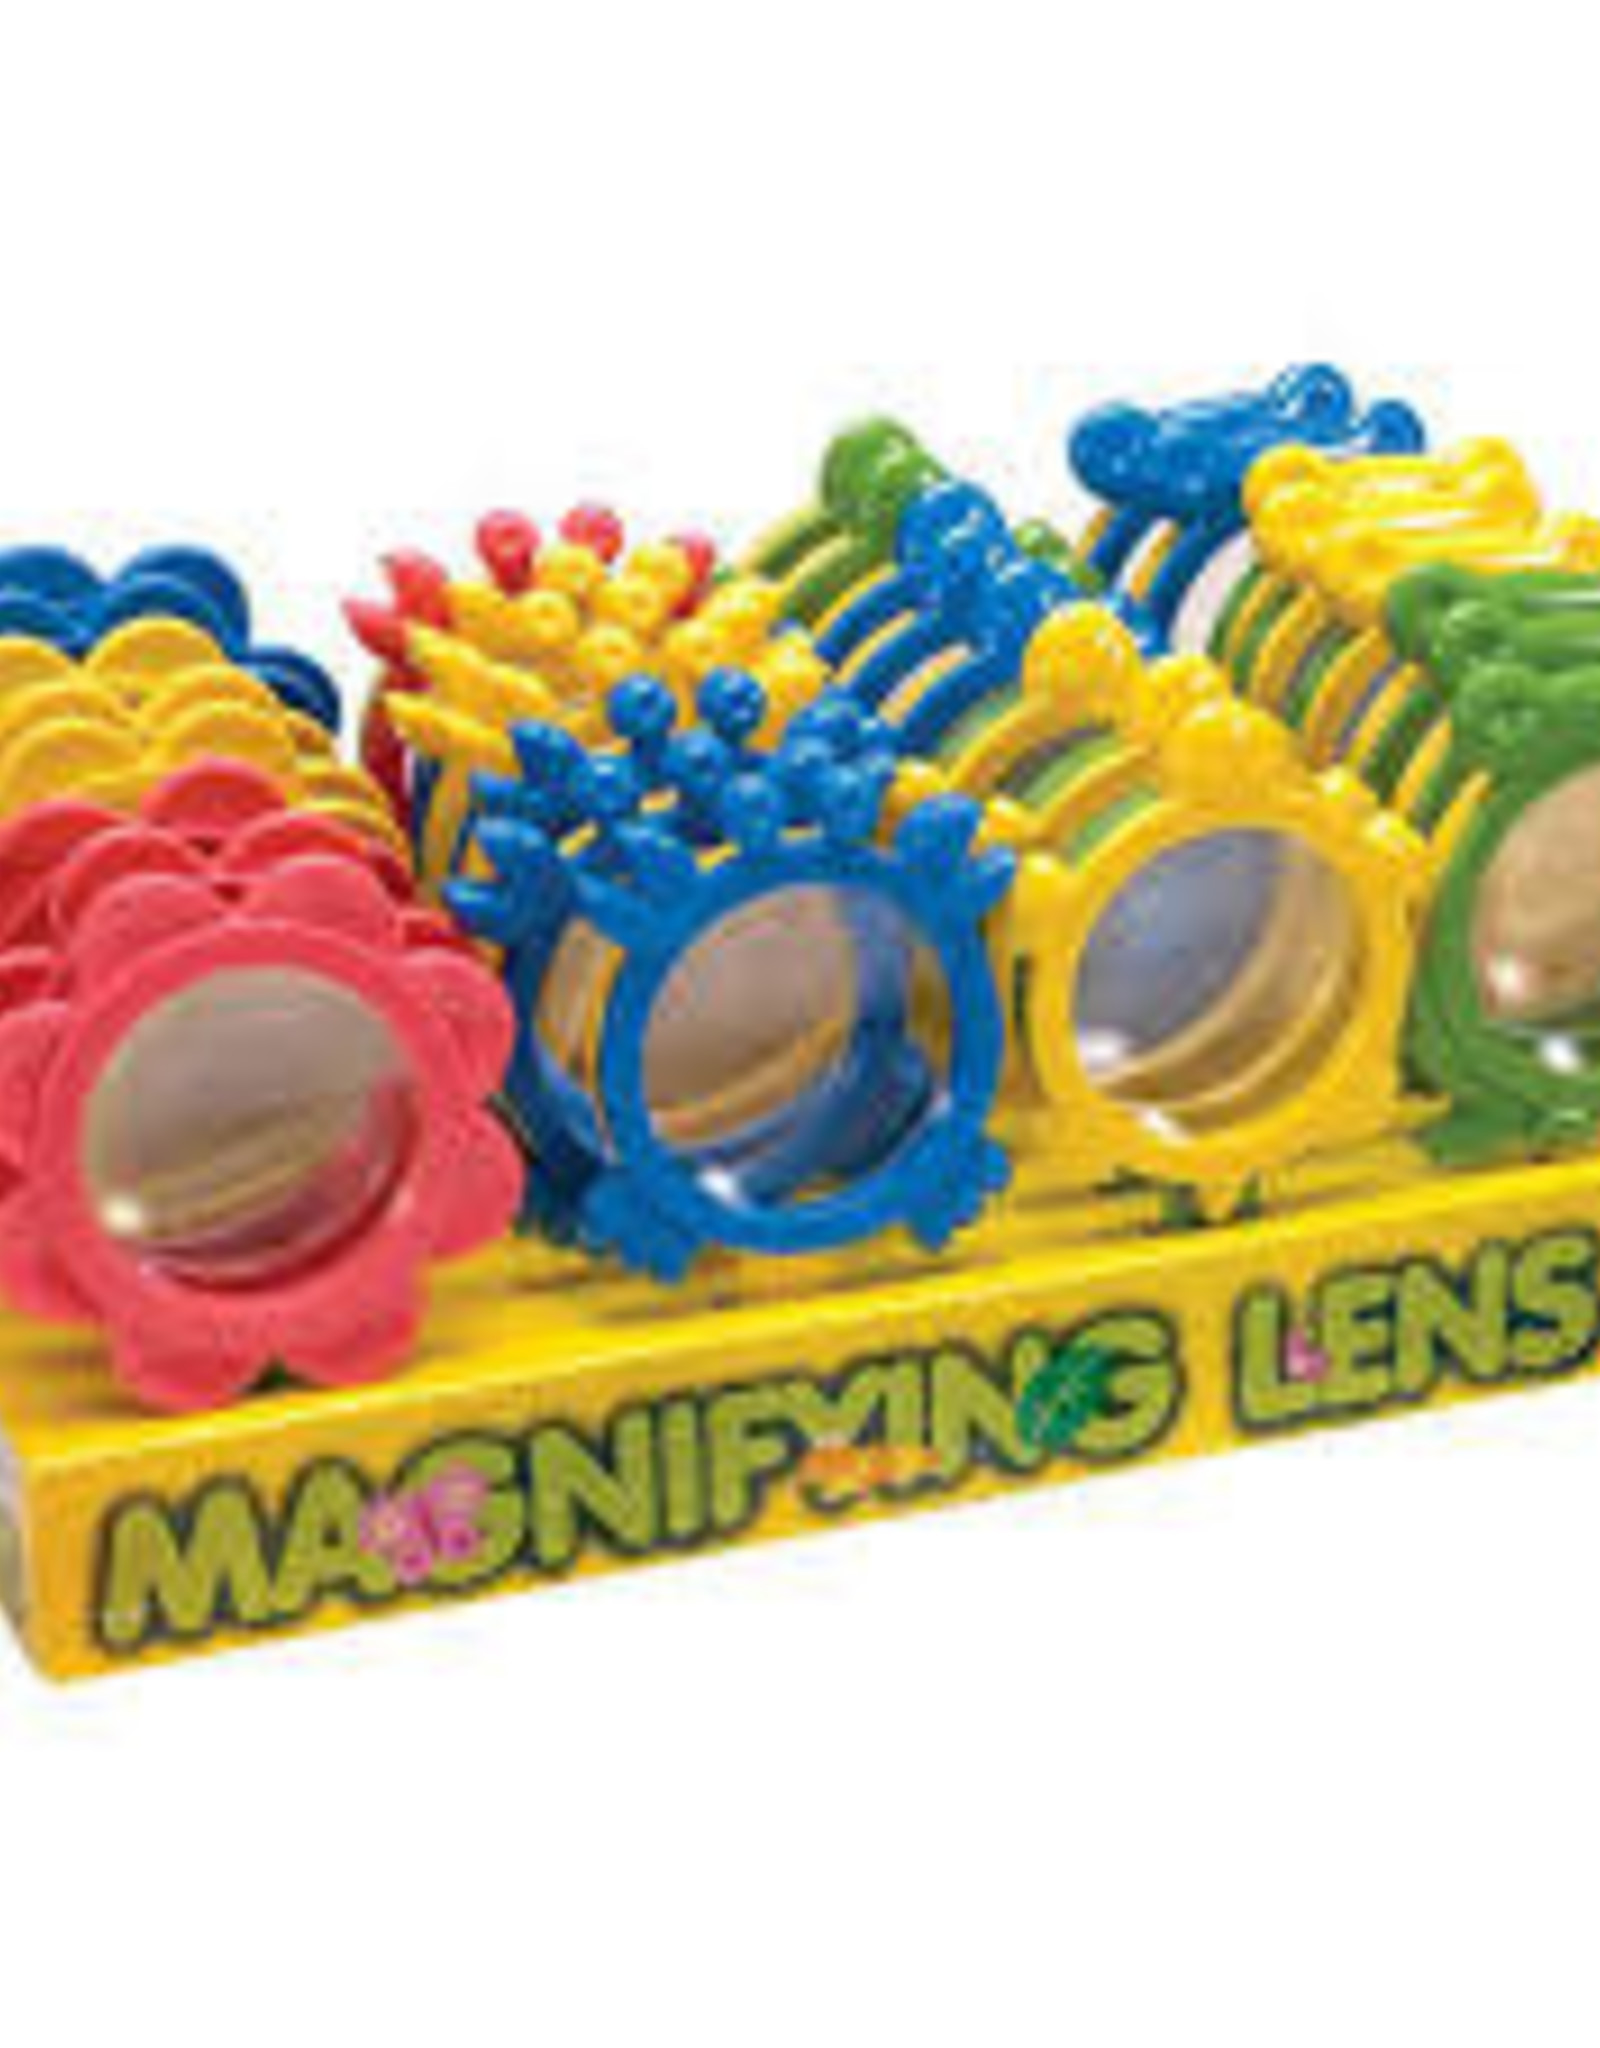 Playwell Magnifying Lens